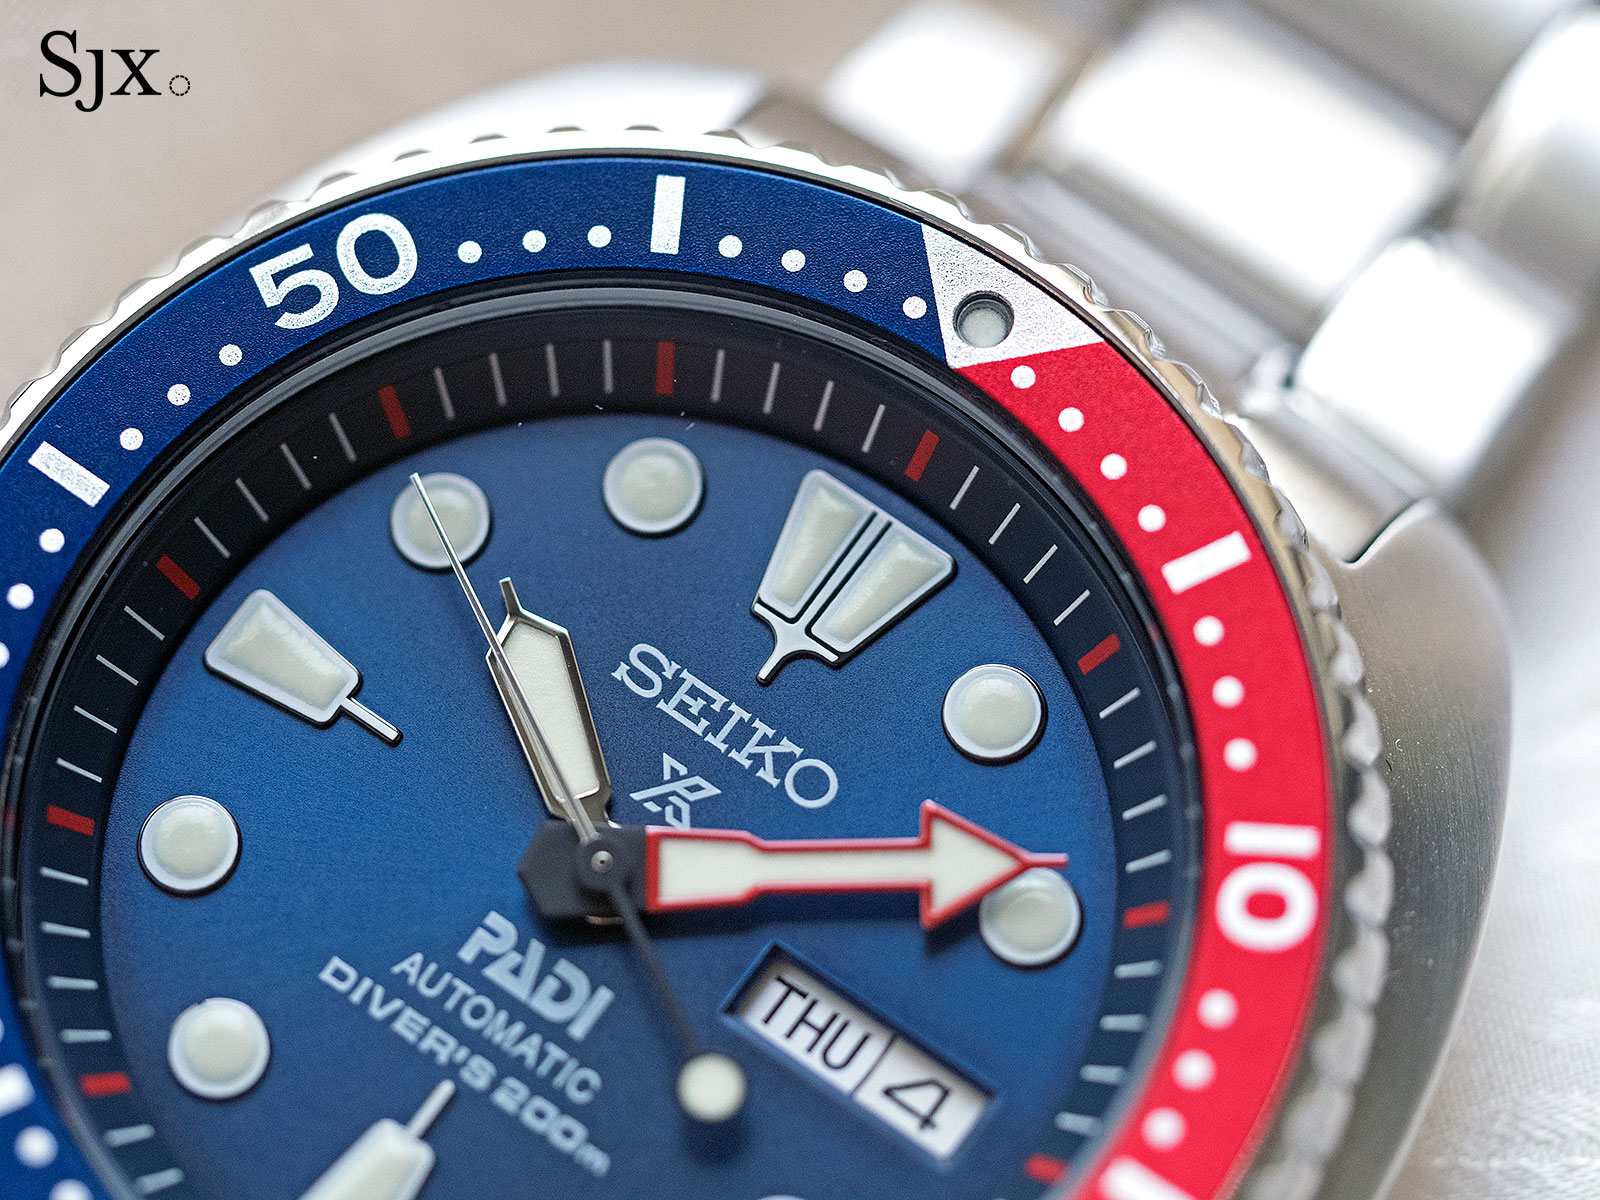 Hands On With The Seiko Padi Diver Automatic Ref Srpa21 K1 Sjx